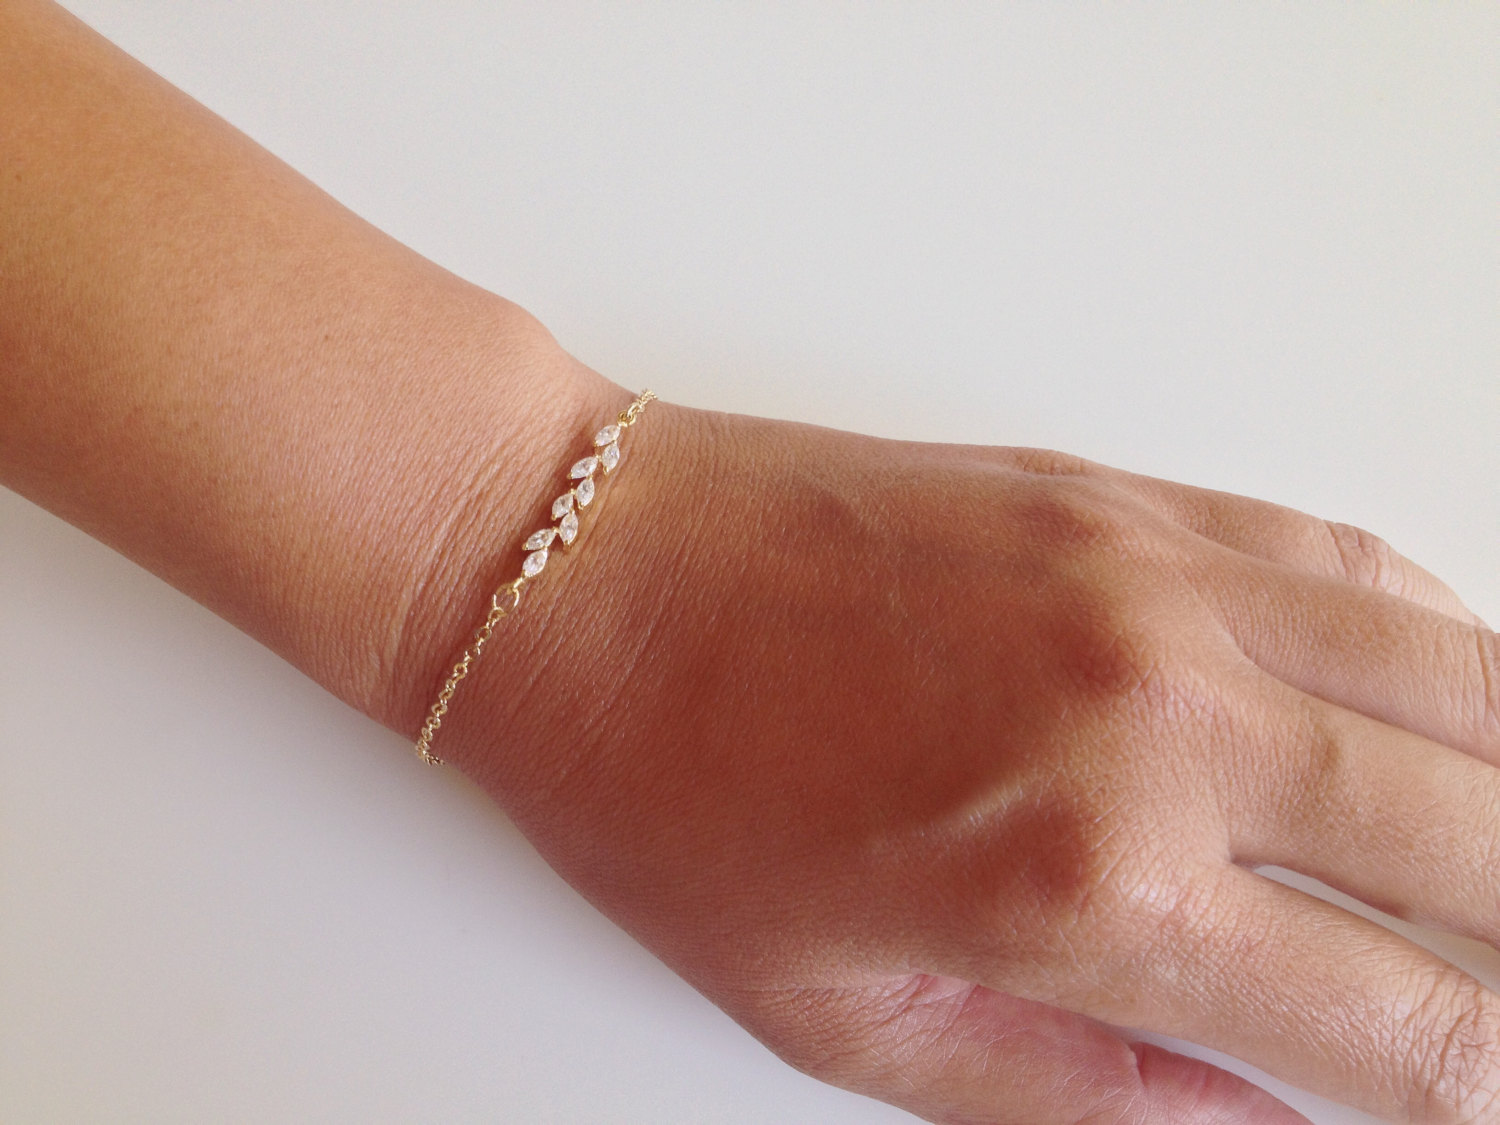 14k gold filled chain or sterling silver bracelet with cubic zirconia leaf detail